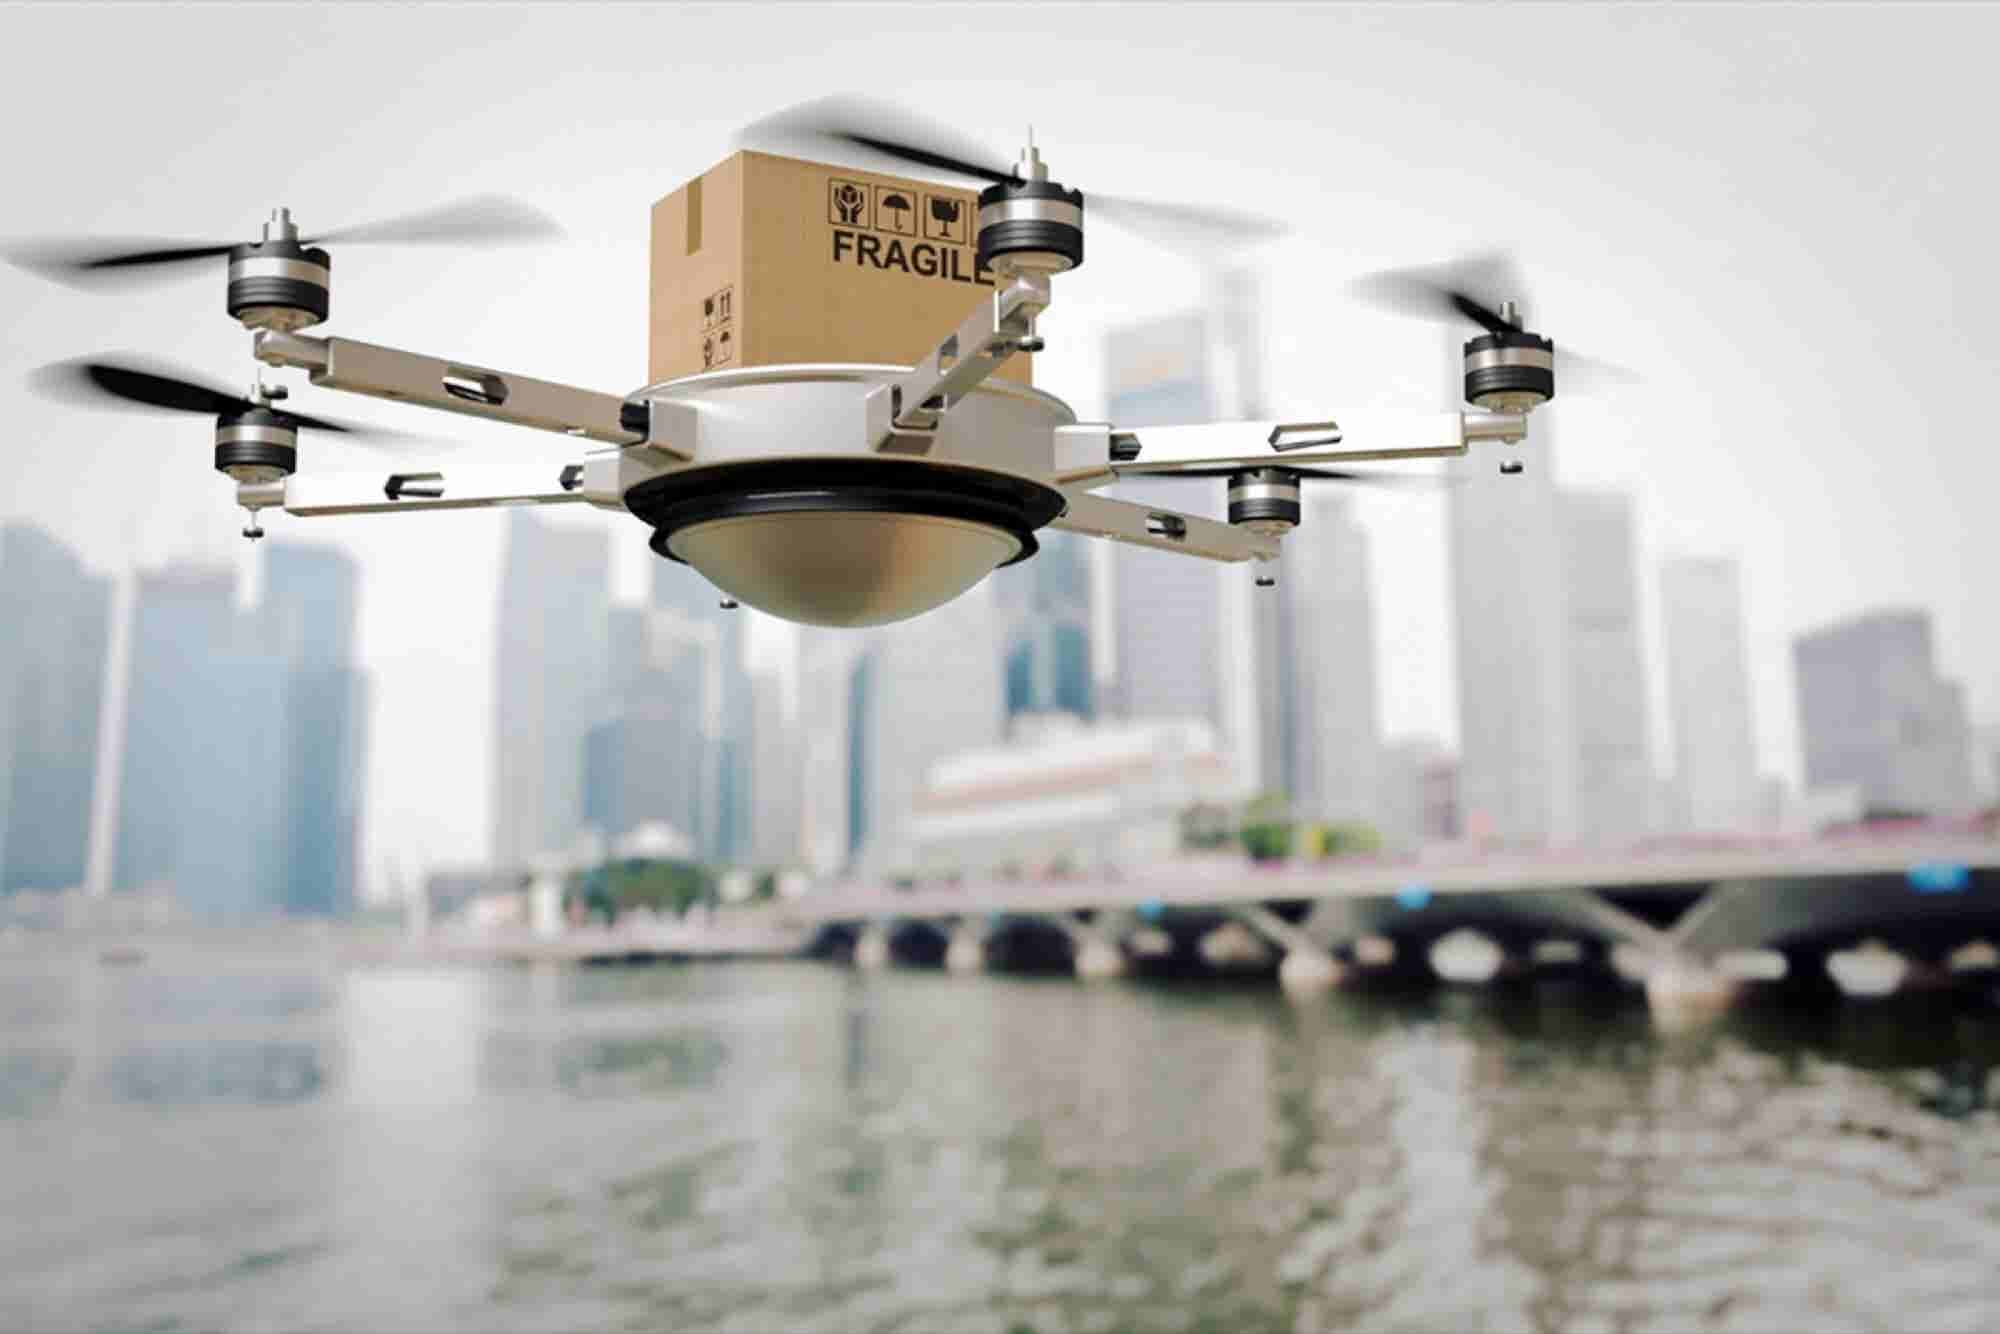 Google to Test Project Wing Drone Delivery Service in the U.S.